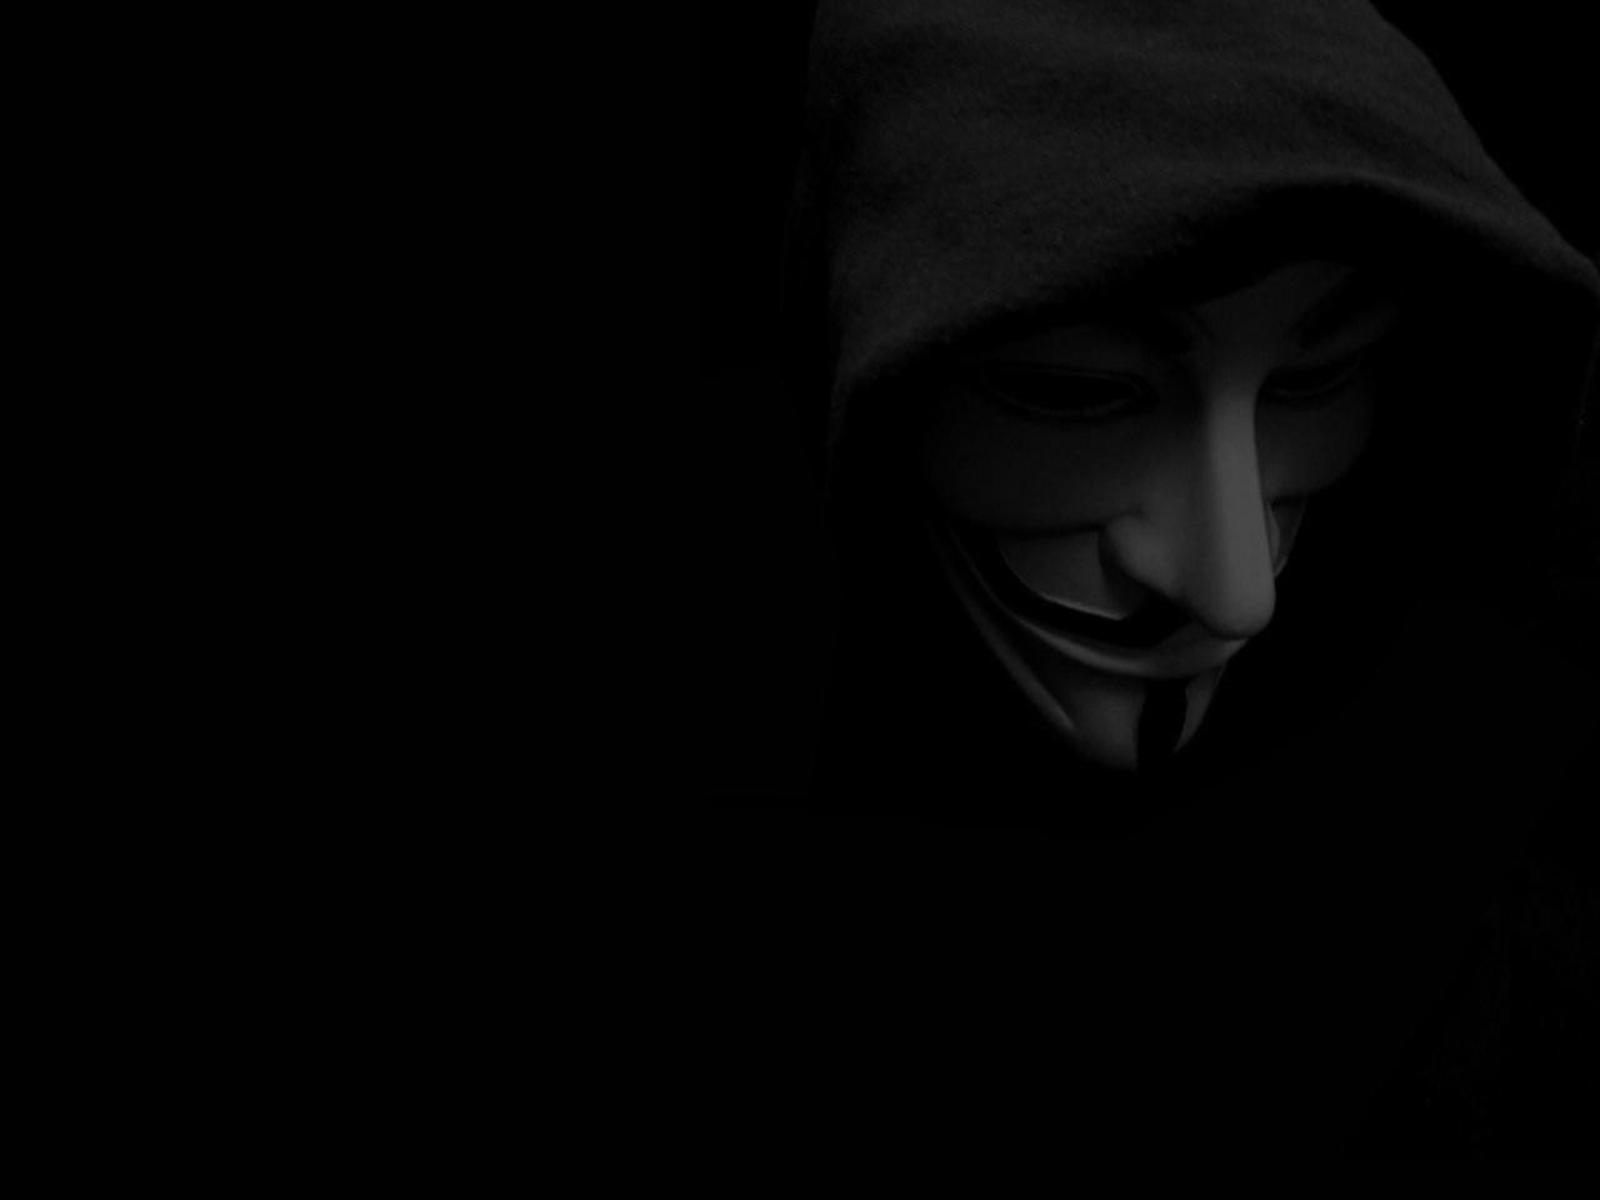 HD V For Vendetta Wallpaper-High Definition Wallpapers Stock